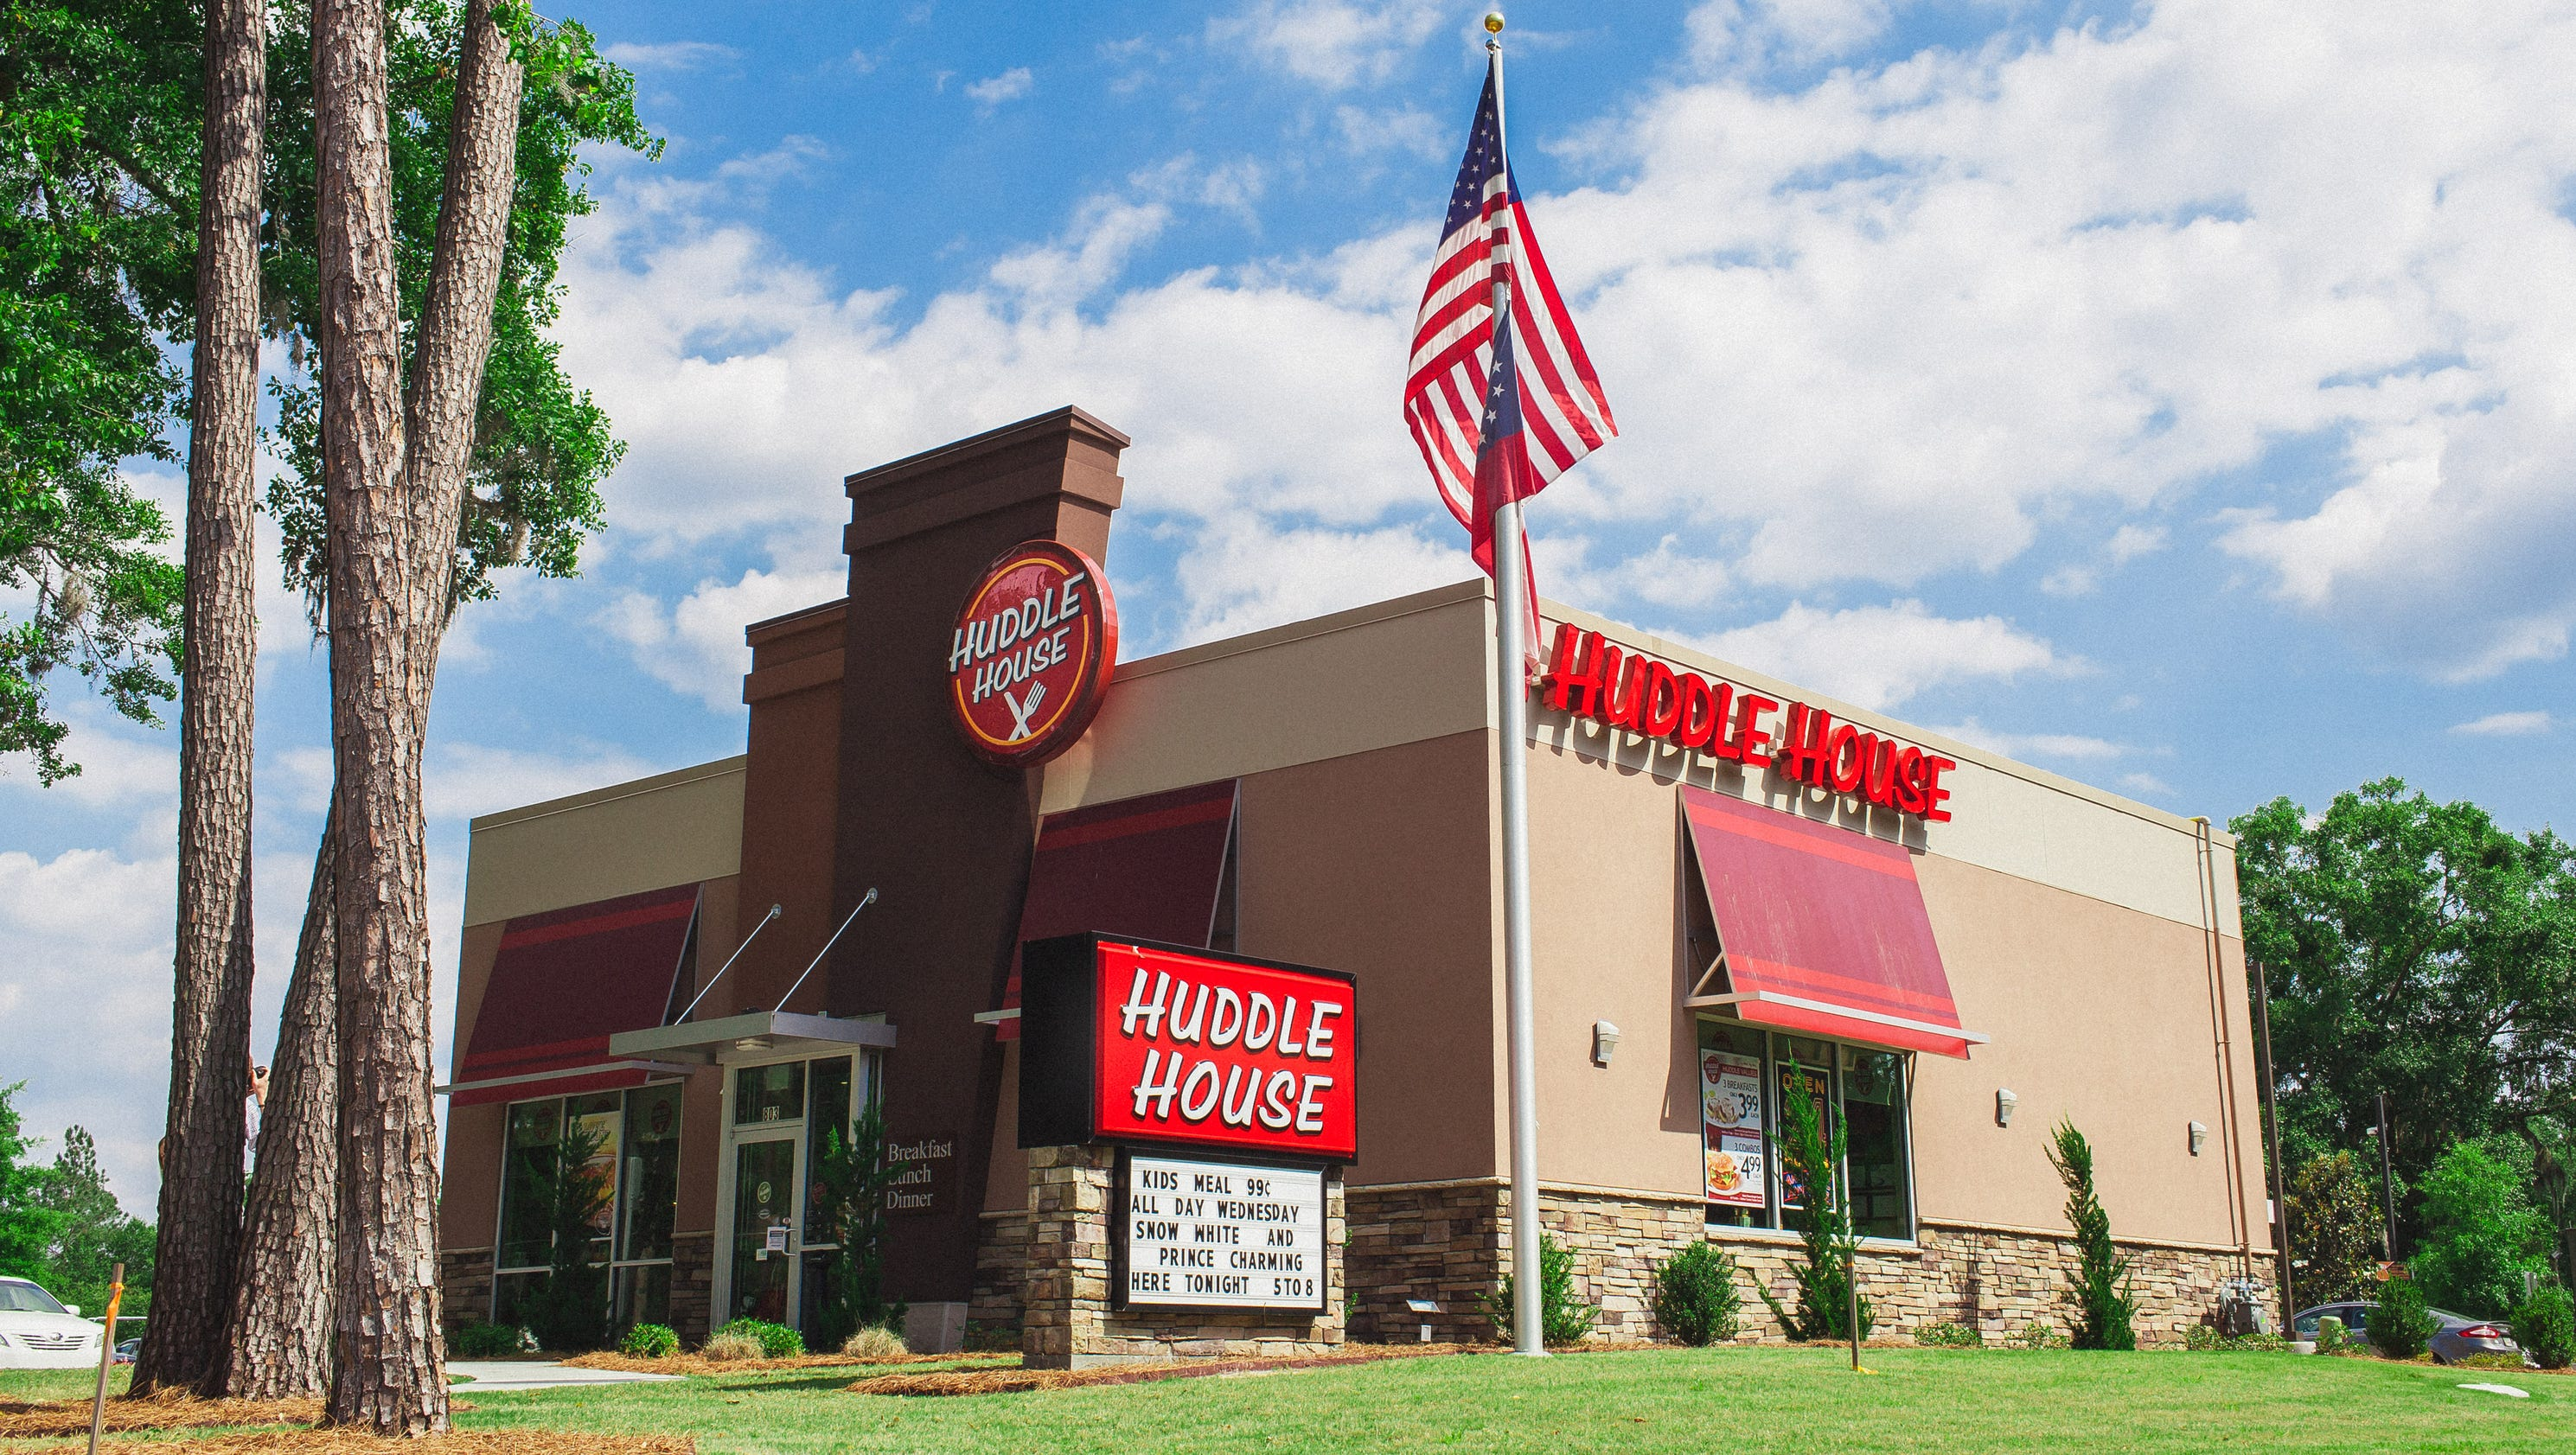 Restaurant chain Huddle House looks to expand to Springfield